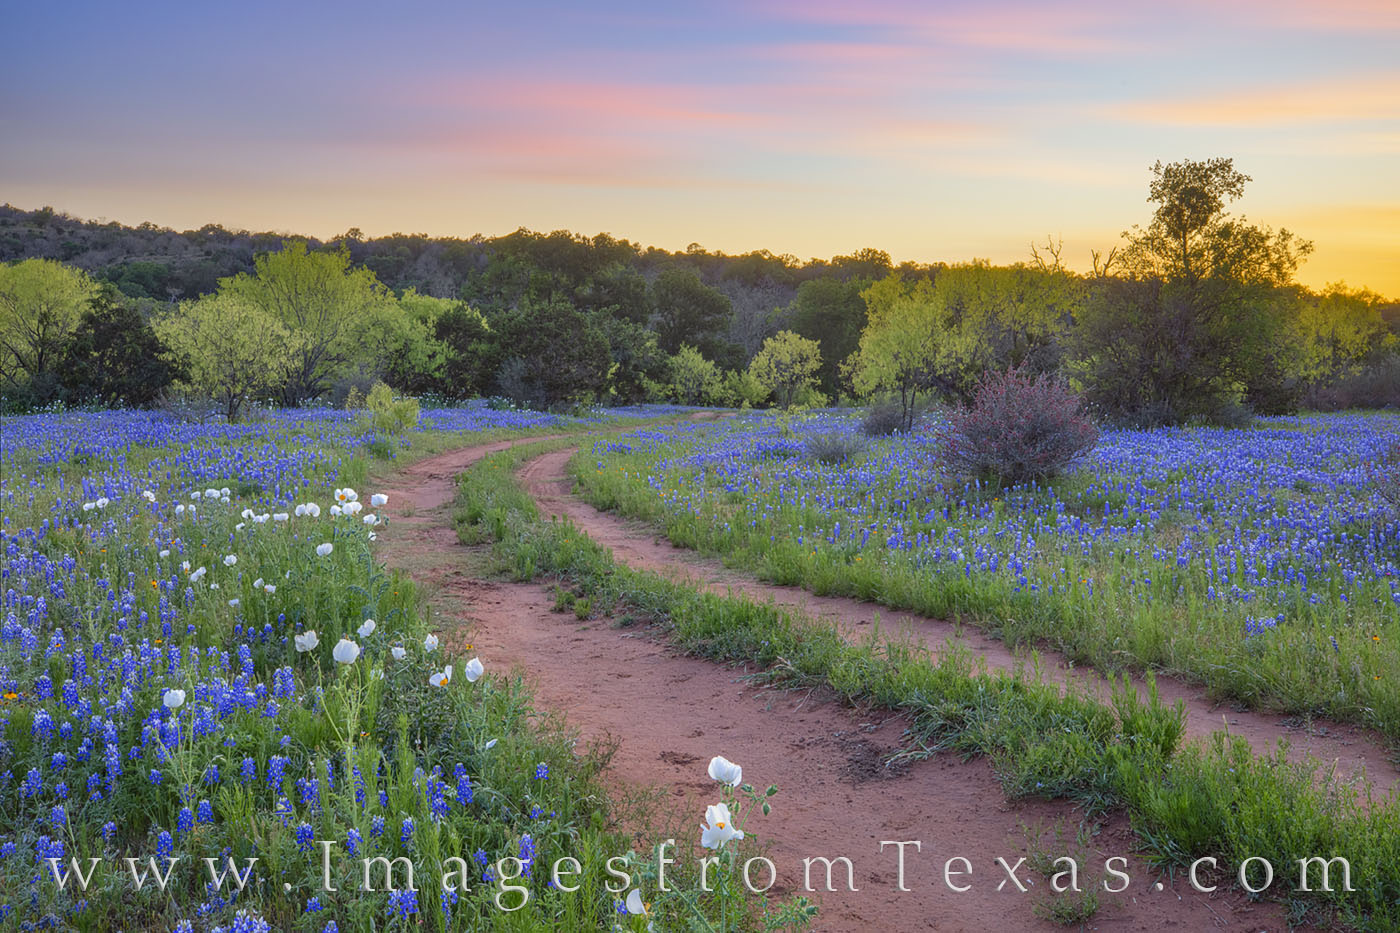 Bluebonnets, wildflowers, white poppies, white prickly poppies, tracks, dirt road, backroads, hill country, rural, quiet, sunset, photo